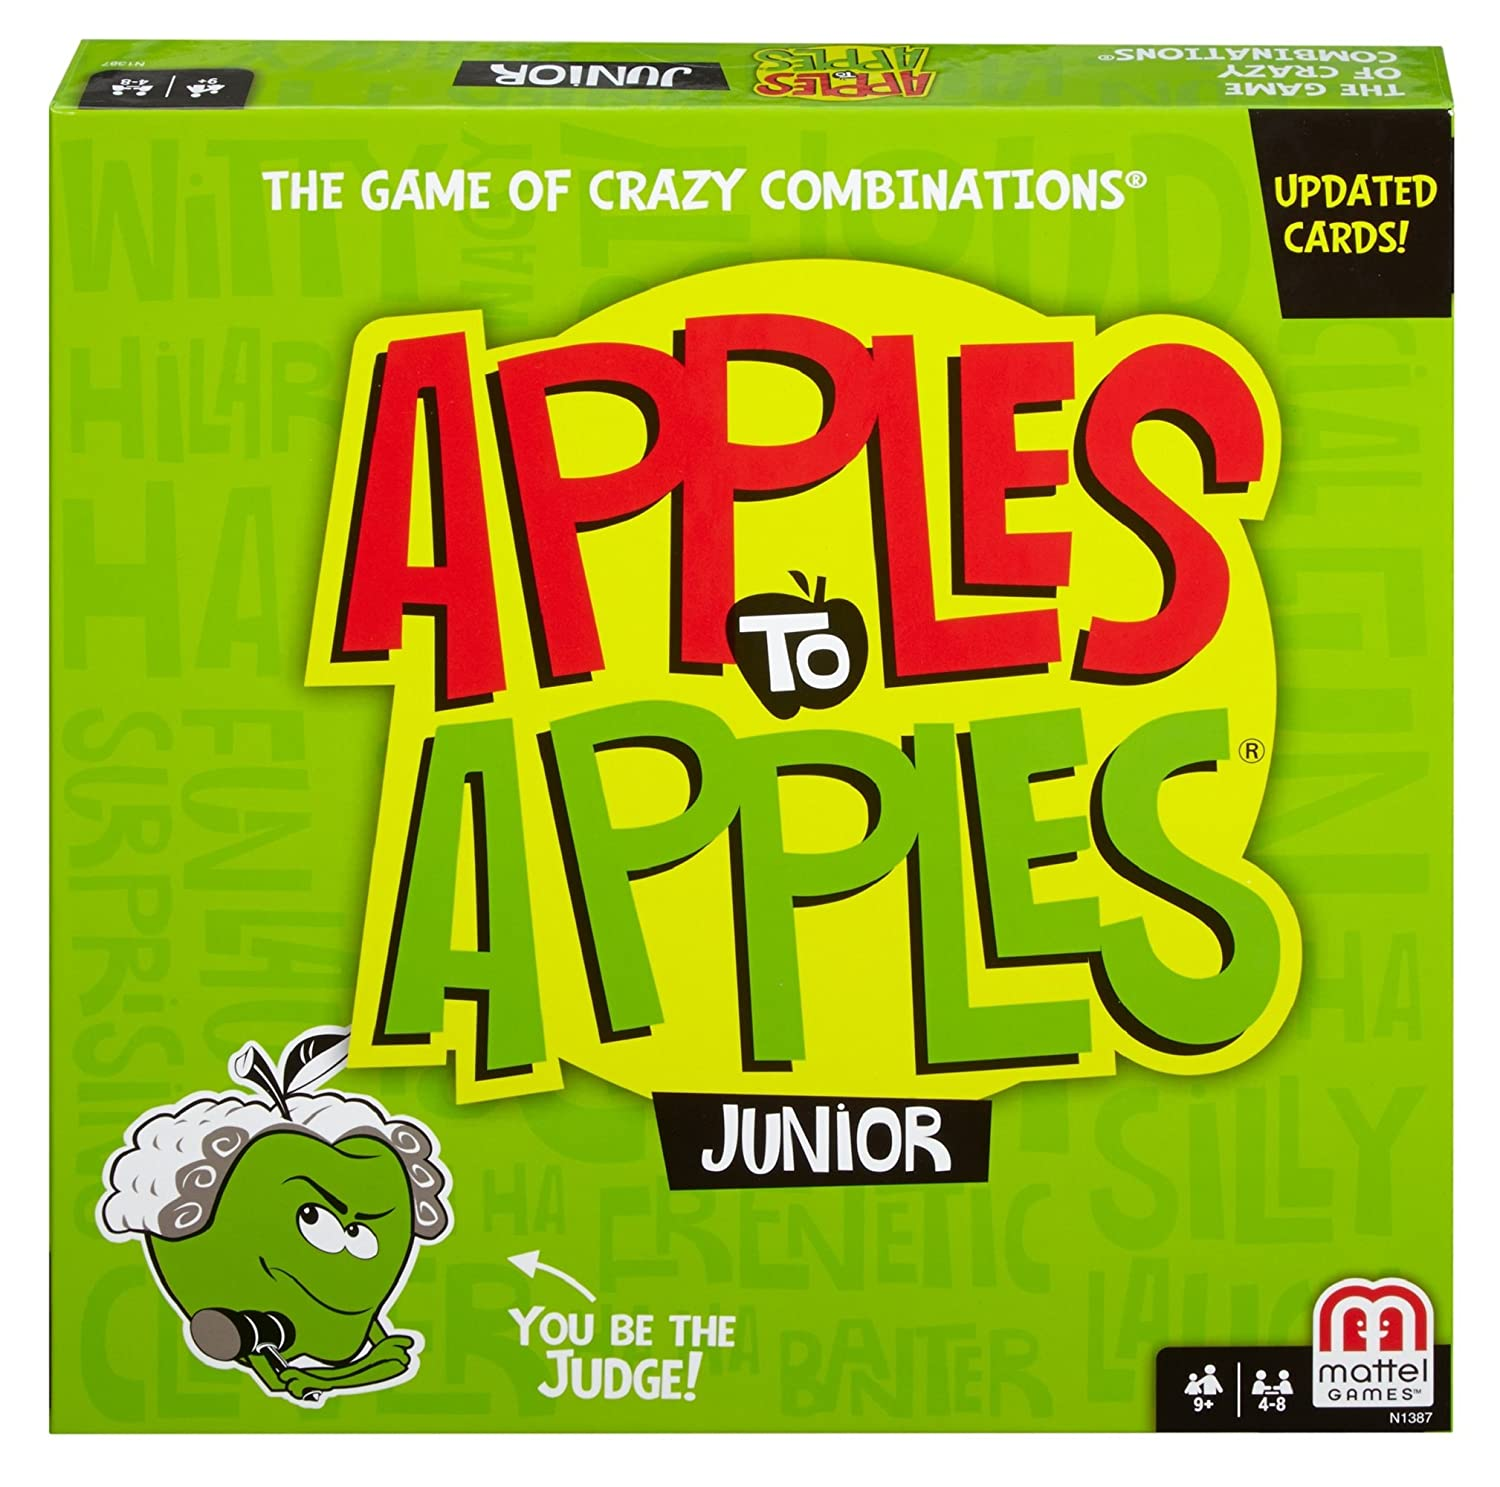 Apples to Apples Junior - The Game of